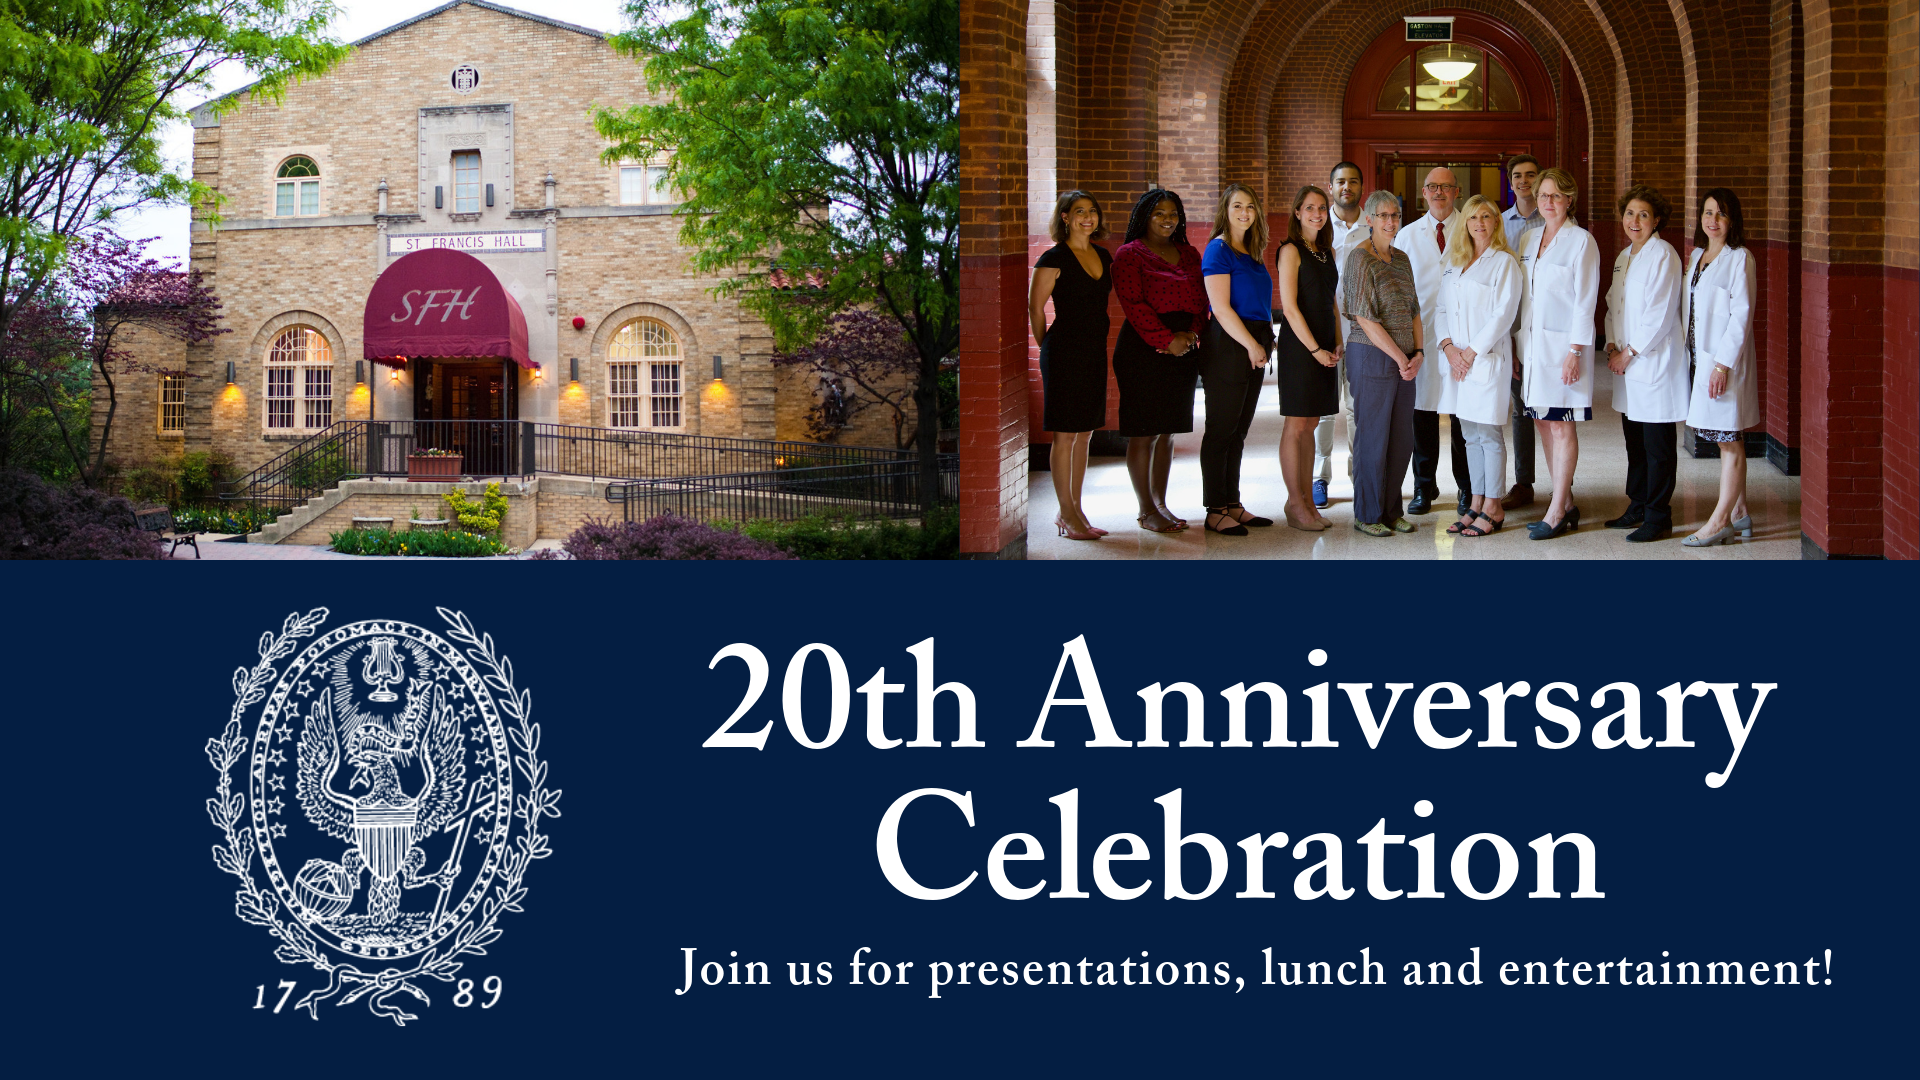 20th Anniversary Celebration on October 17, 2019.